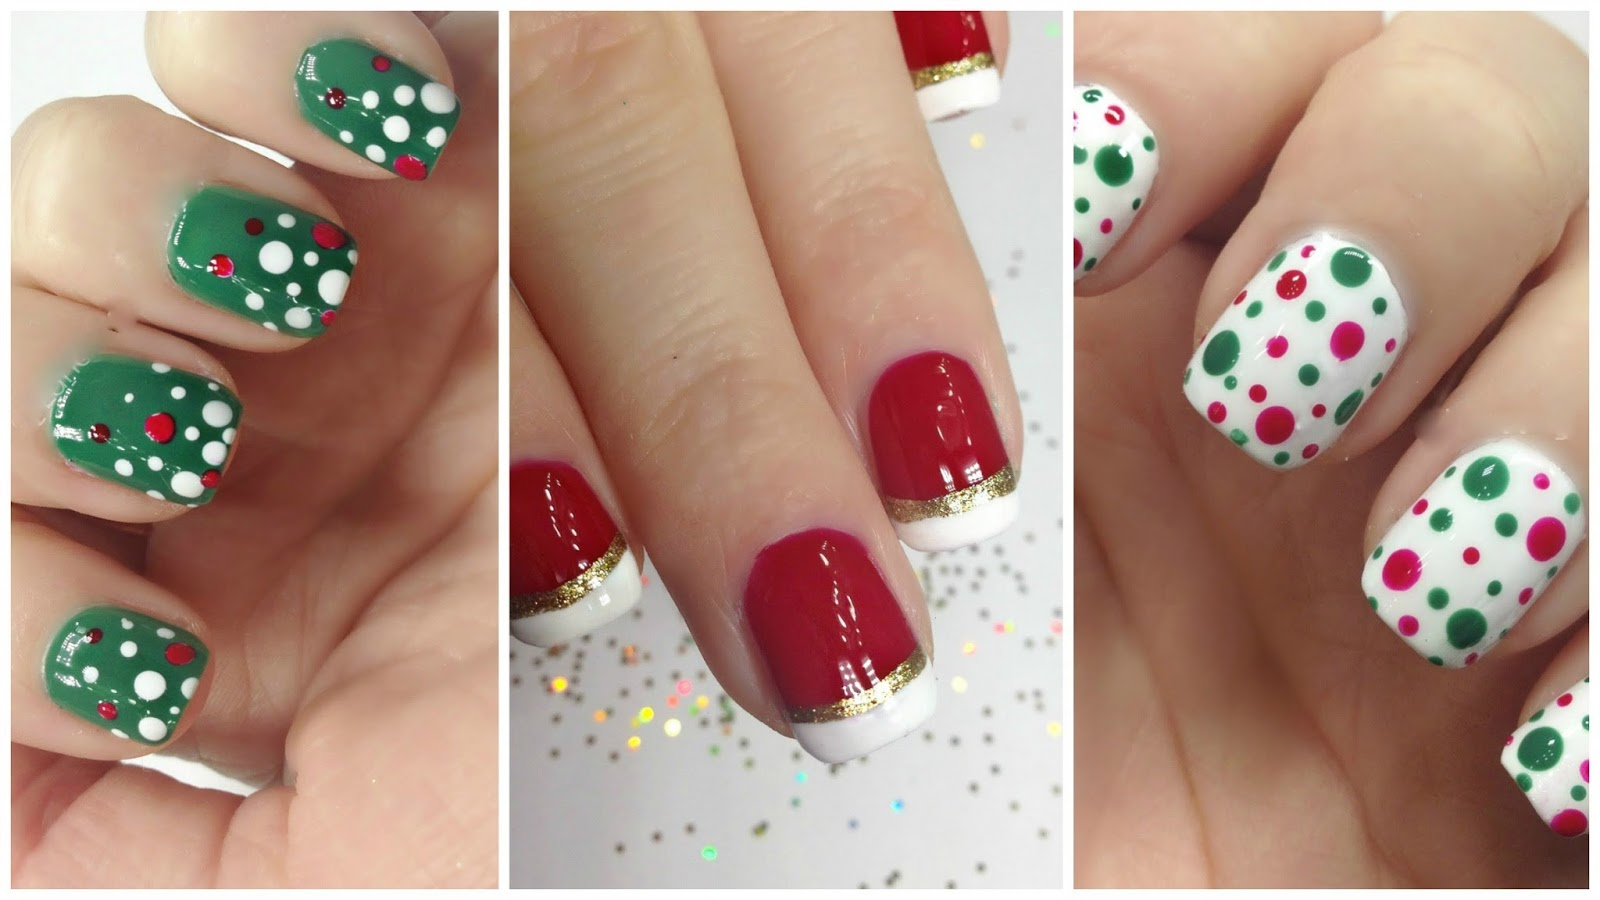 Nail art designs easy christmas nail designs for beginners at home step by step images solutioingenieria Gallery